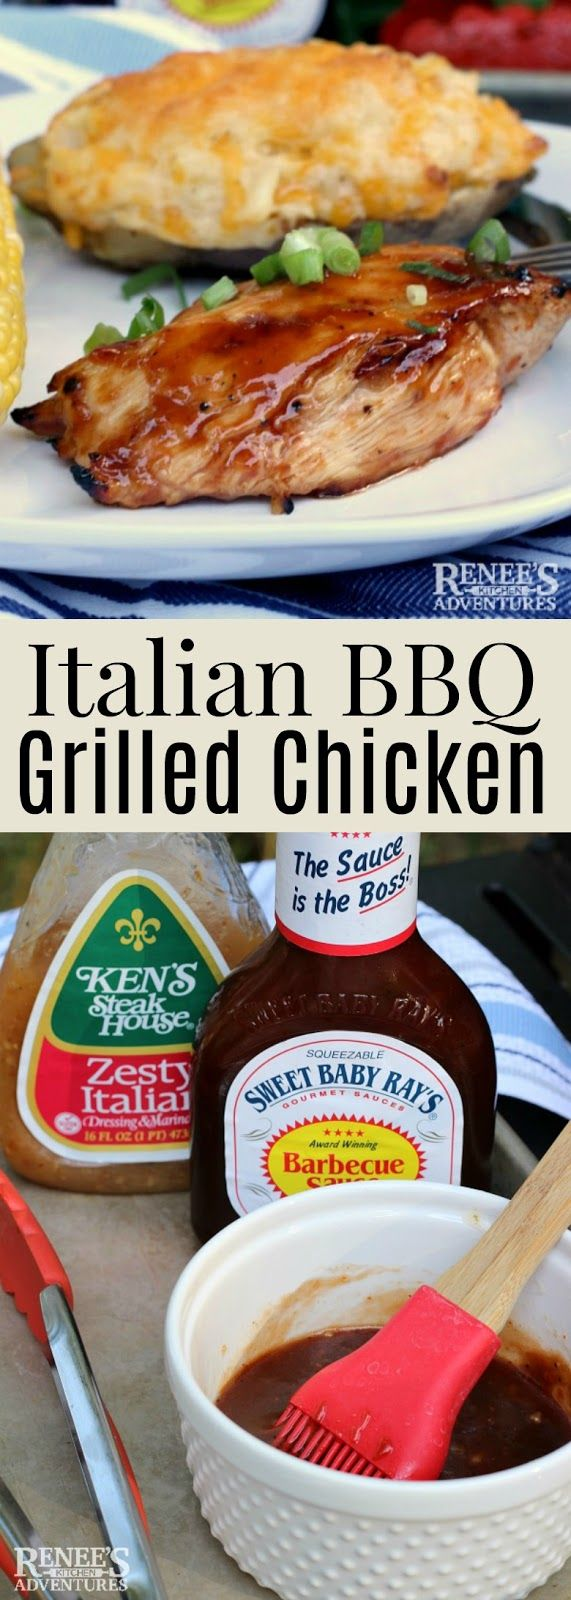 Italian BBQ Grilled Chicken | Renee's Kitchen Adventures - easy recipe for grilled barbecue chicken breasts made with BBQ sauce and Italian Salad Dressing. Perfect dinner recipe or lunch recipe! #CurbsideConvenience #ad #chicken #grilledchickenrecipe #chickenrecipe